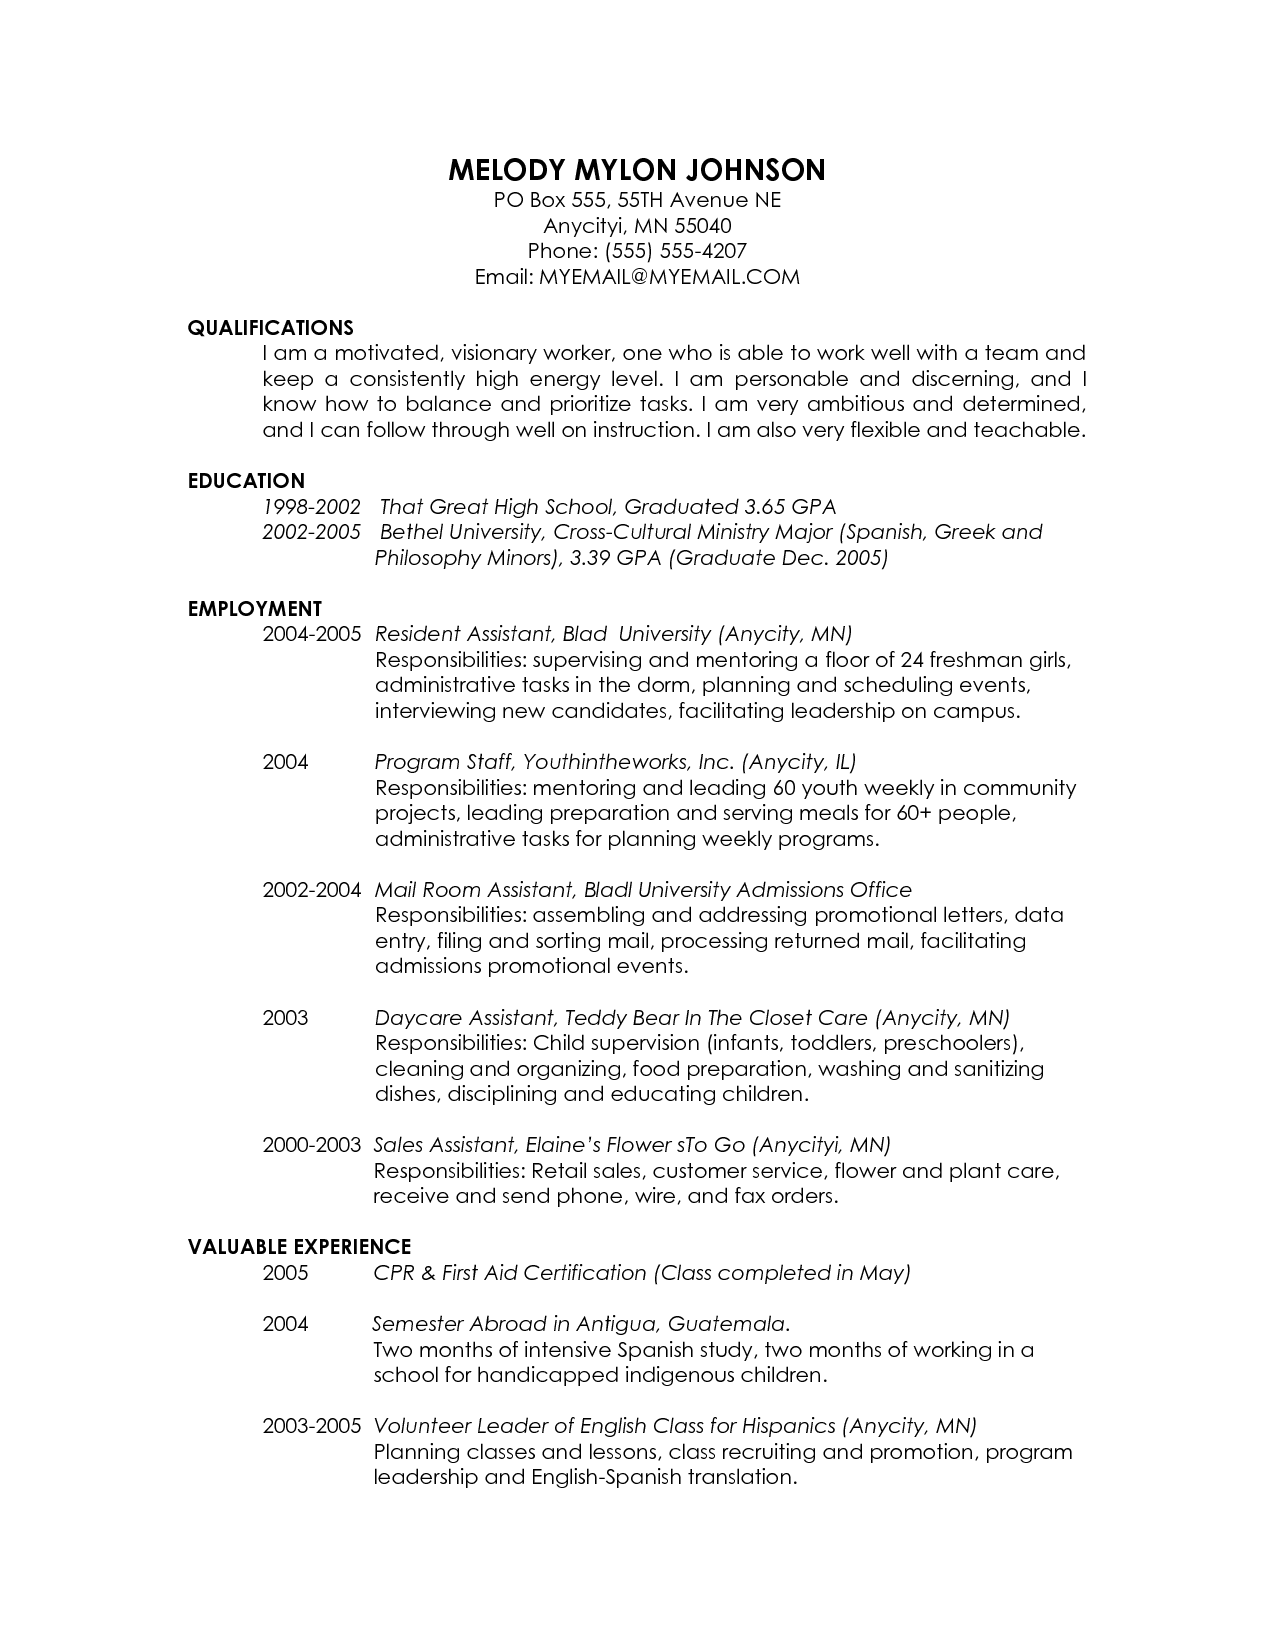 Sample Resume For Graduate School Application.Graduate School Sample Resume Cover Letter Resume For